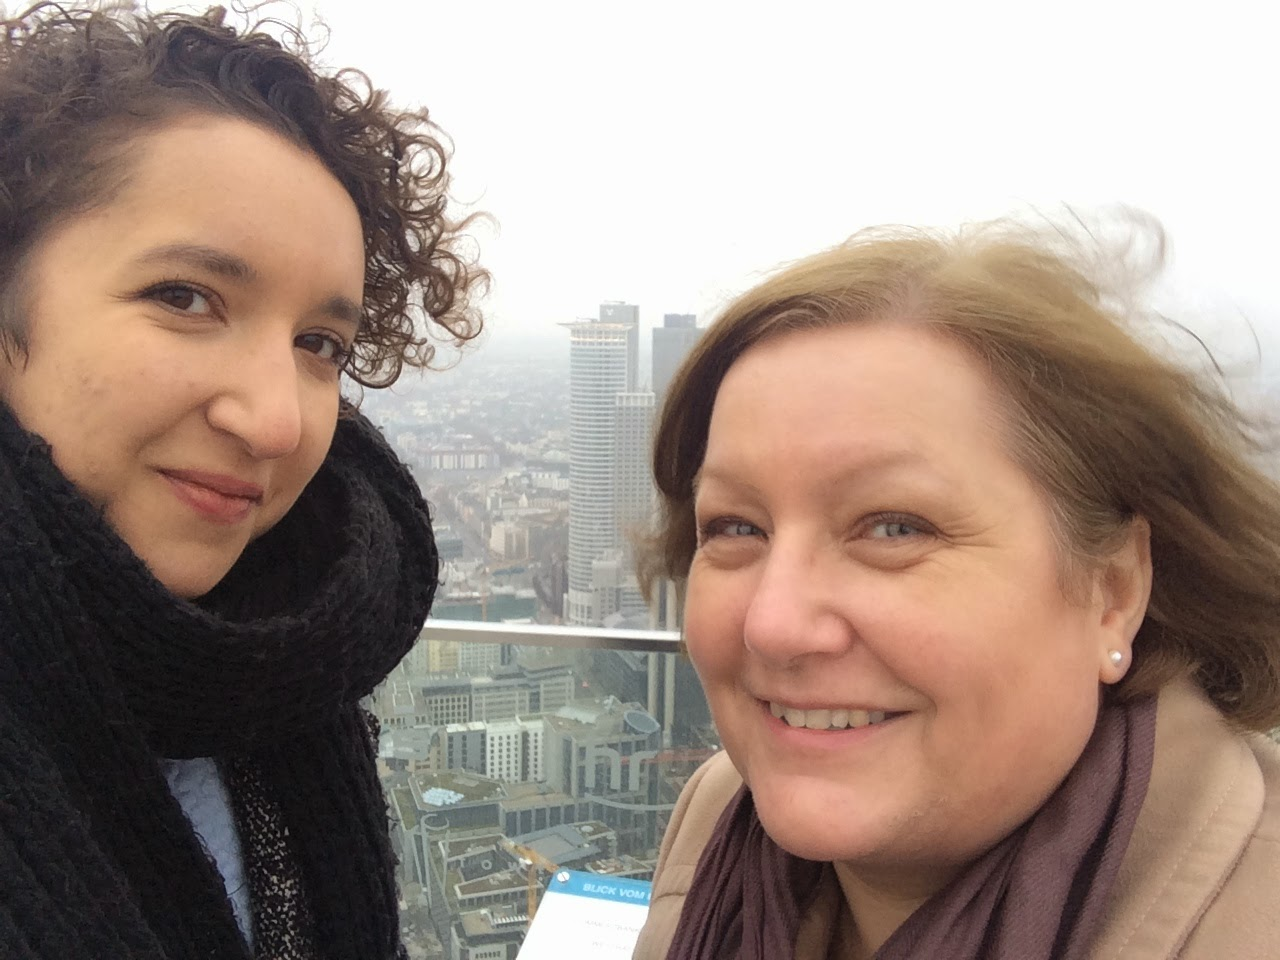 selfie at the top of frankfurt main tower